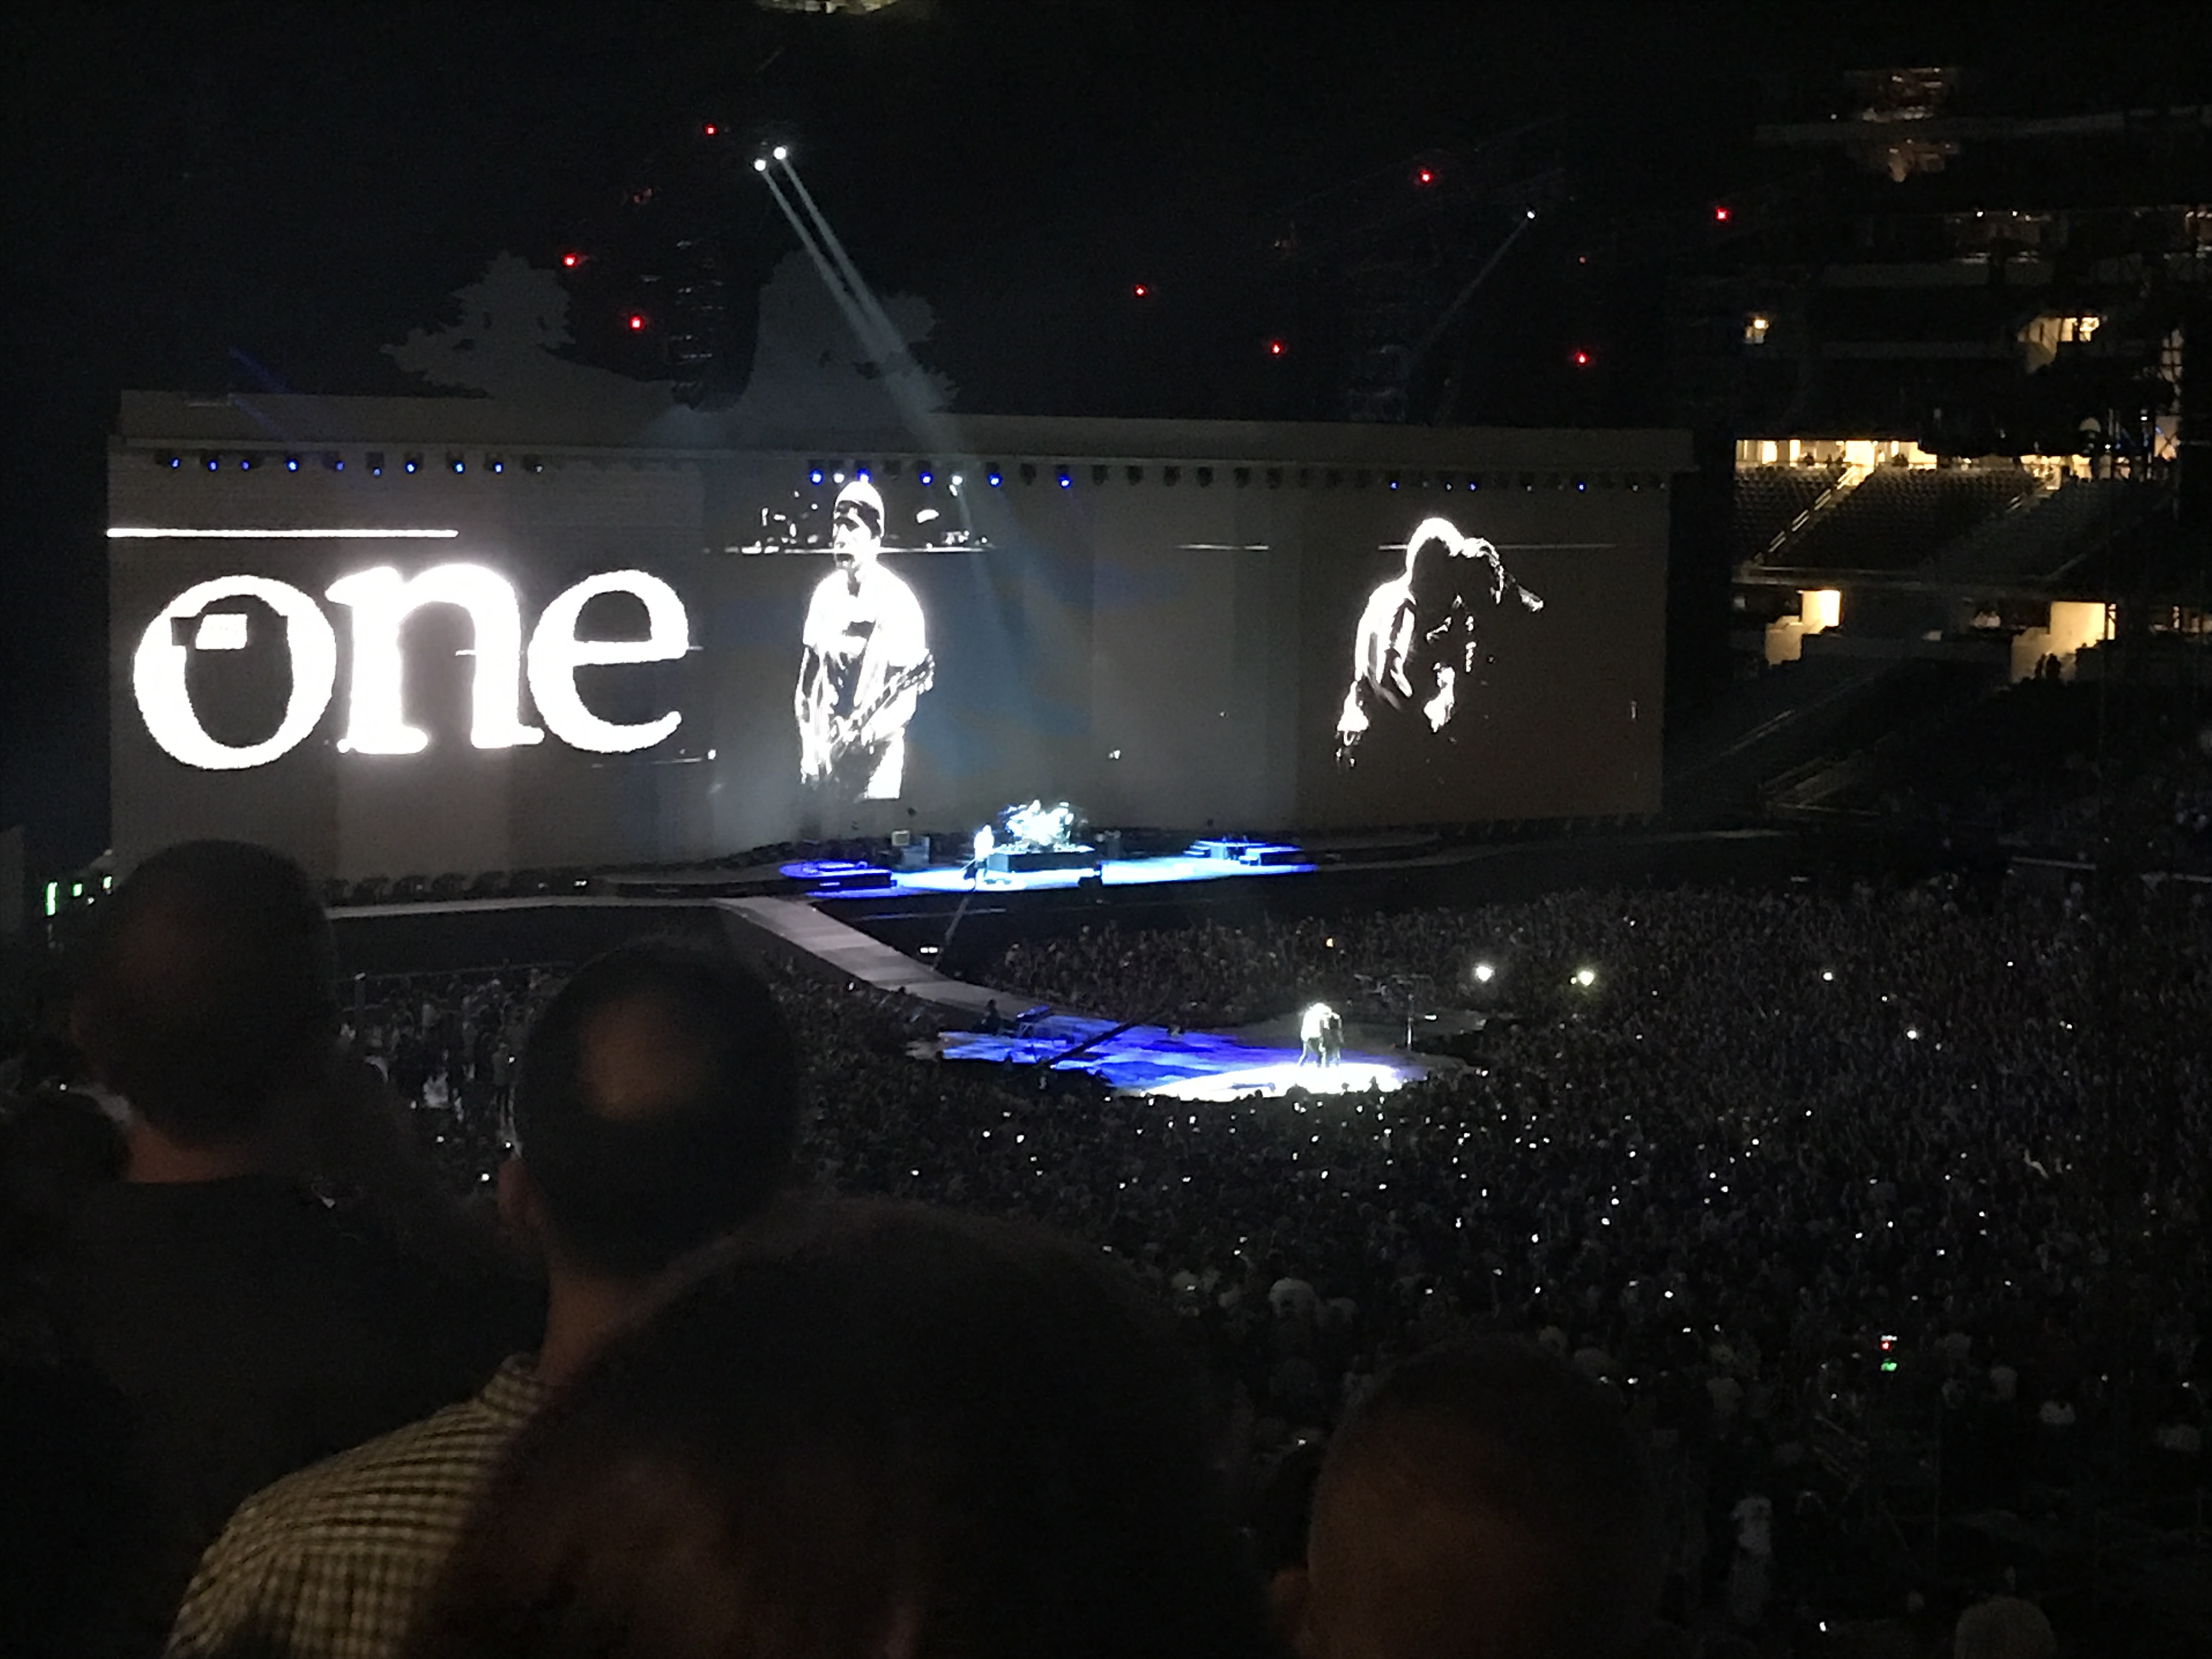 One: Kicking Off Summer Concert Series with U2 - Life Prompted